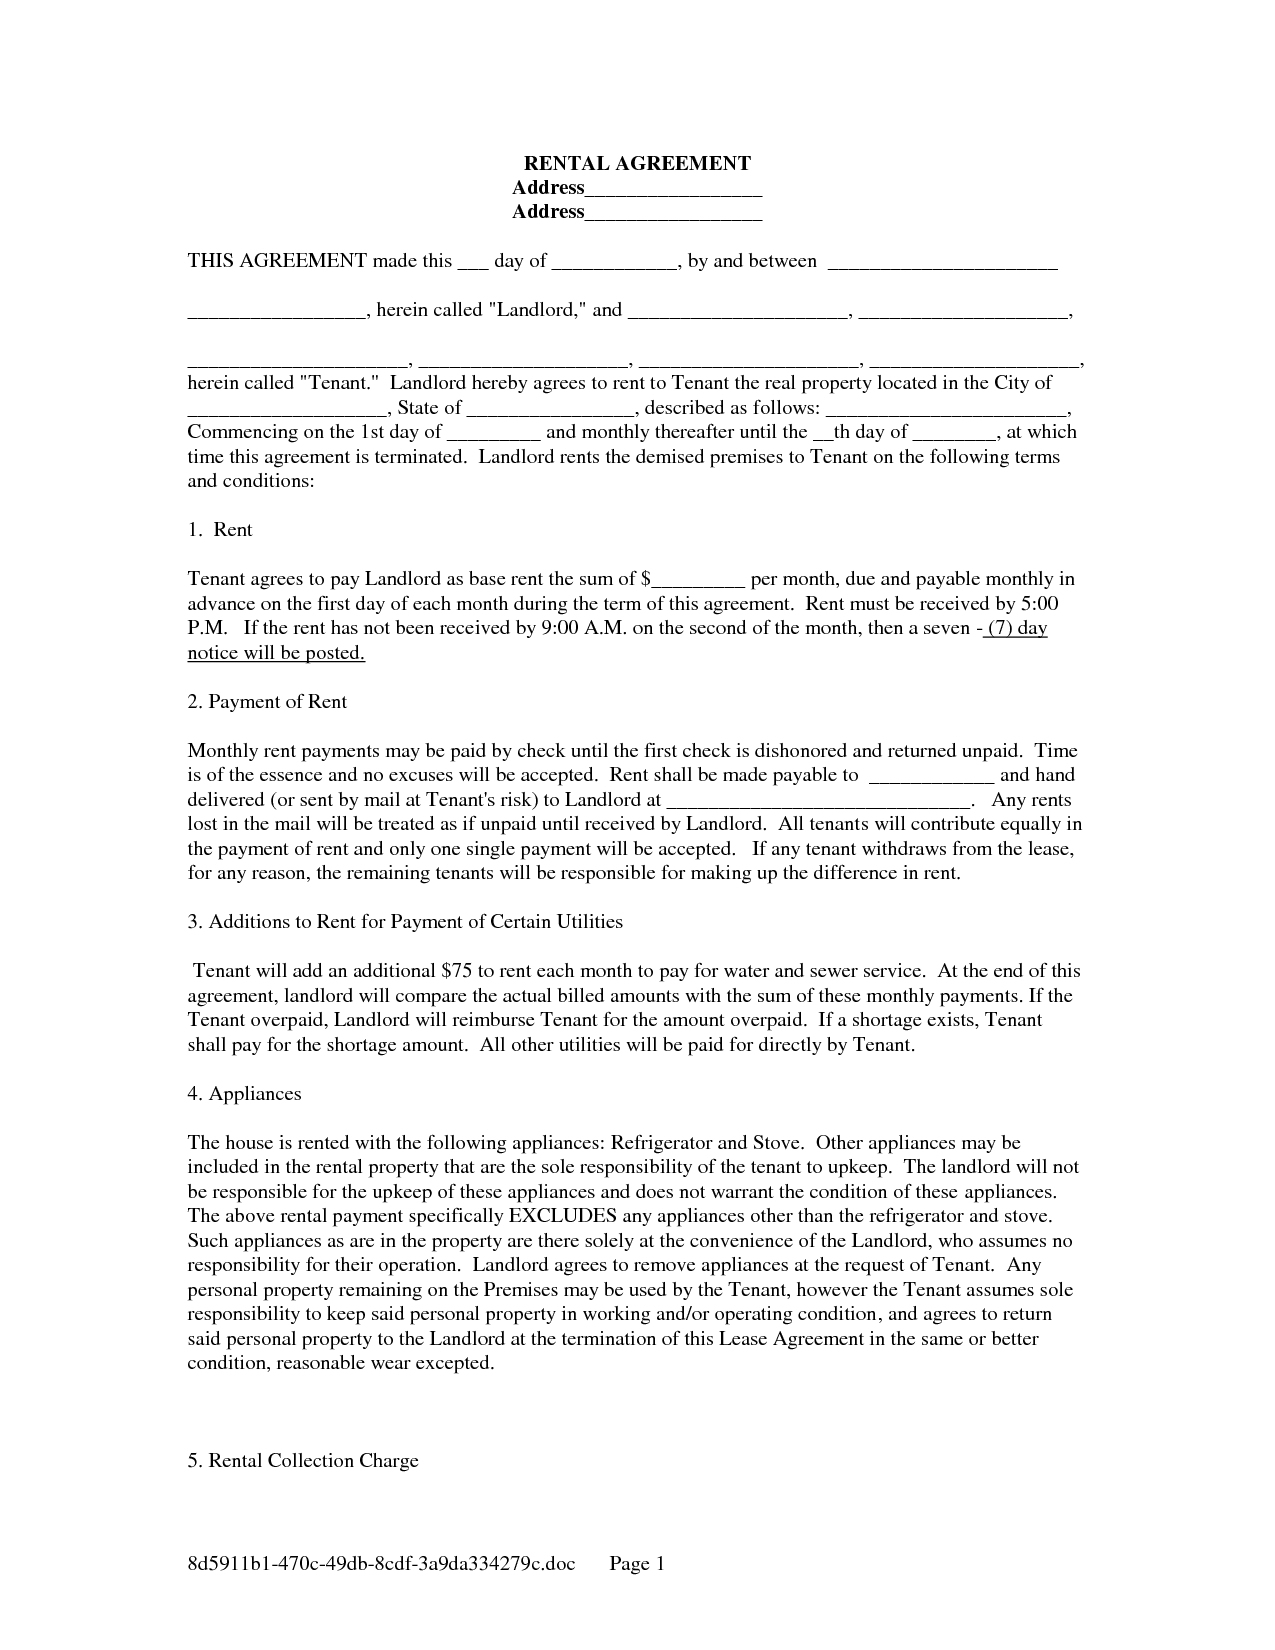 Printable Rental Lease Agreement Form For Free | Shop Fresh - Free Printable Rental Lease Agreement